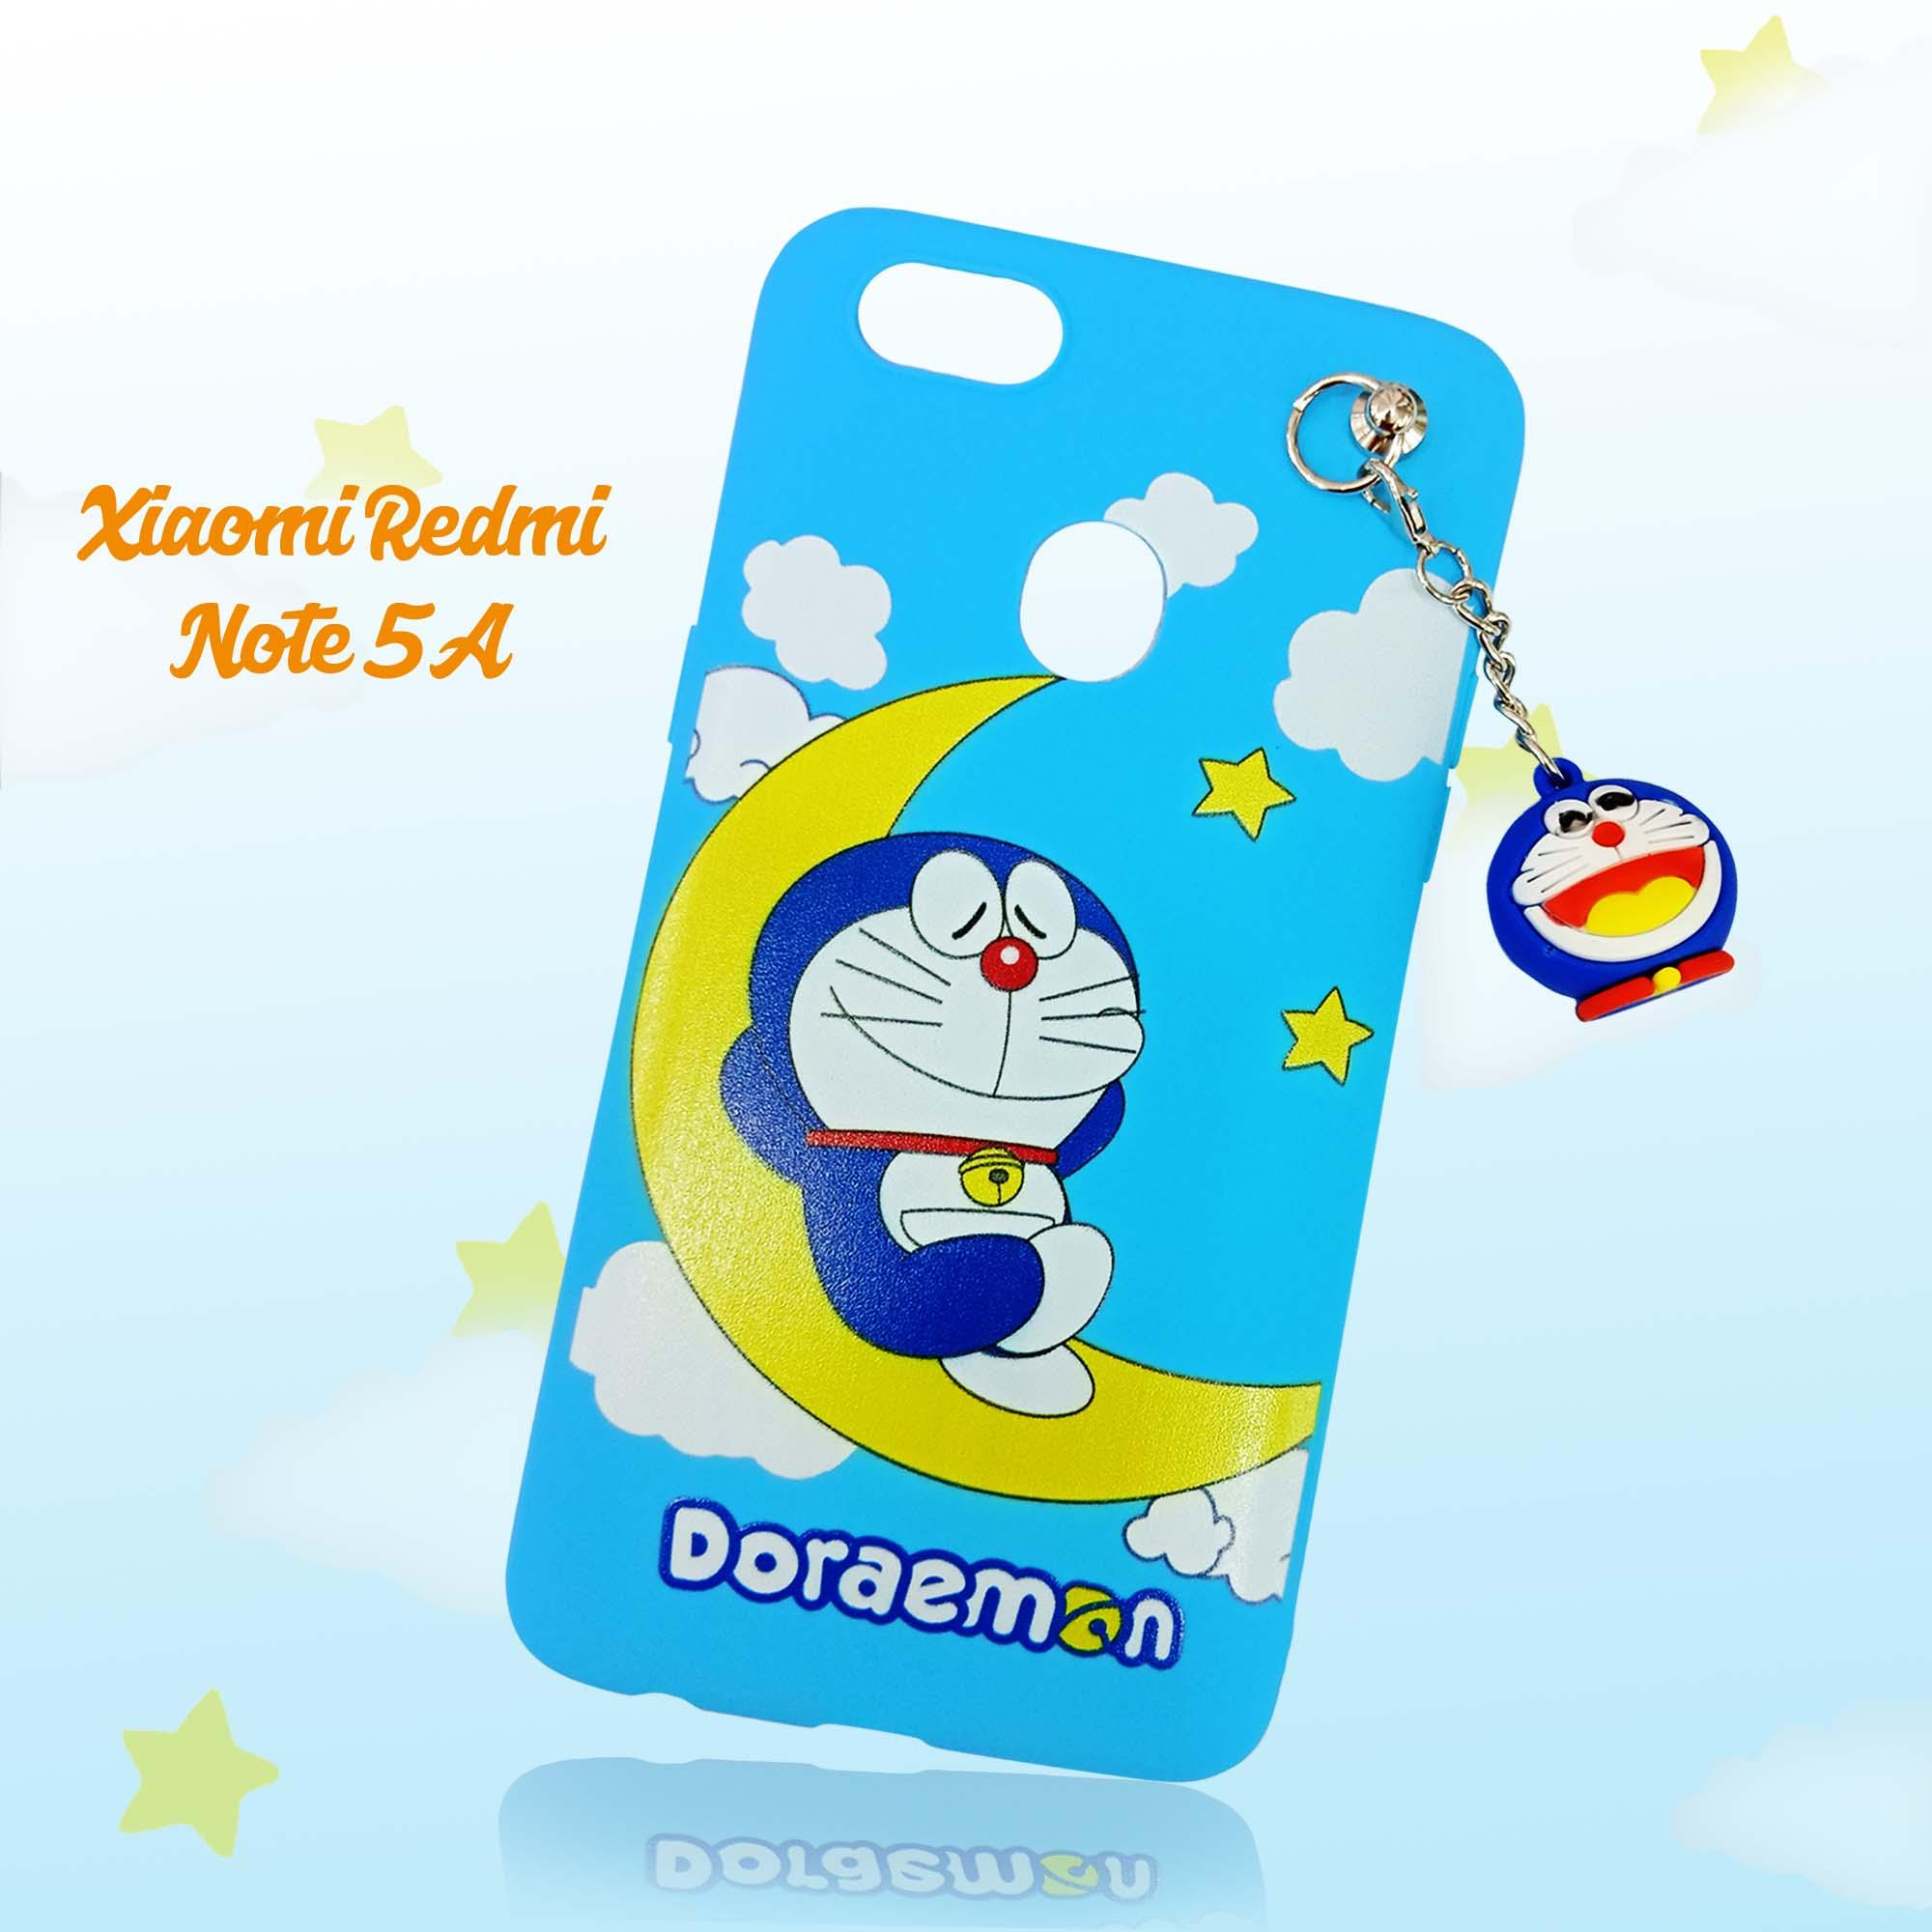 Marintri Case Xiaomi Redmi Note 5A New Doraemon Fashion Style